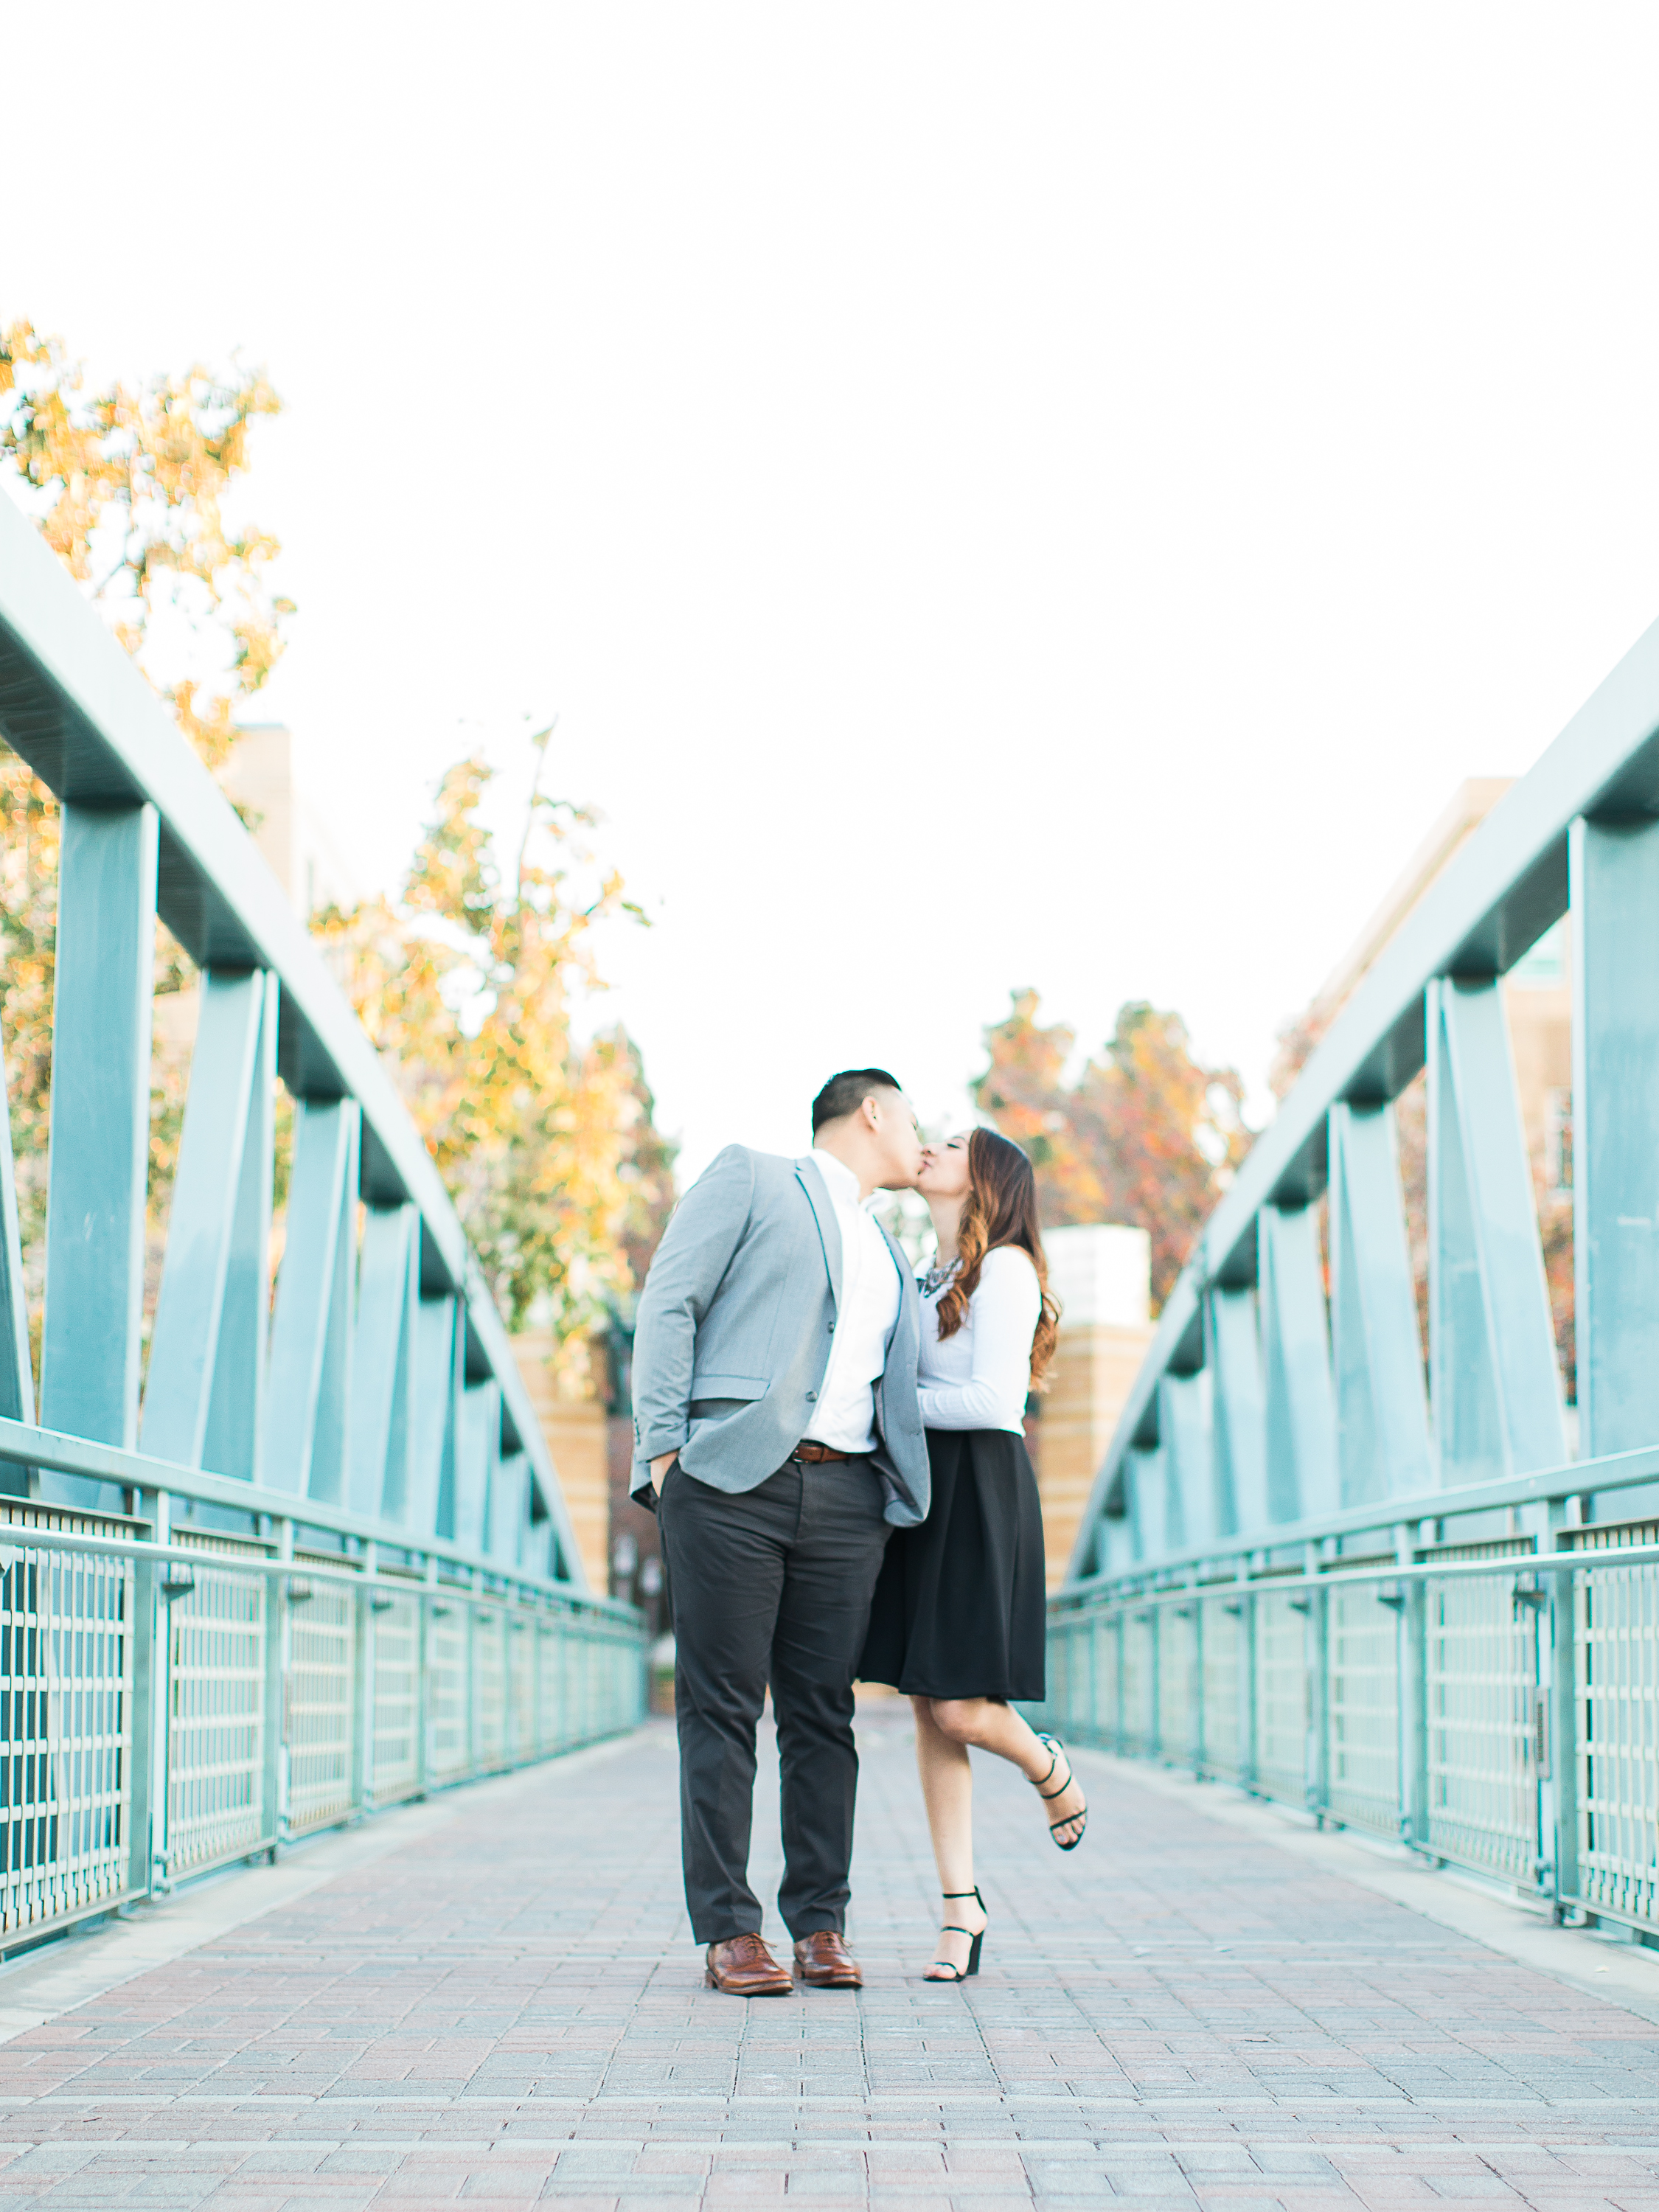 Klint and Yessy Engagement _ Brandon J Ferlin Photography-73.jpg